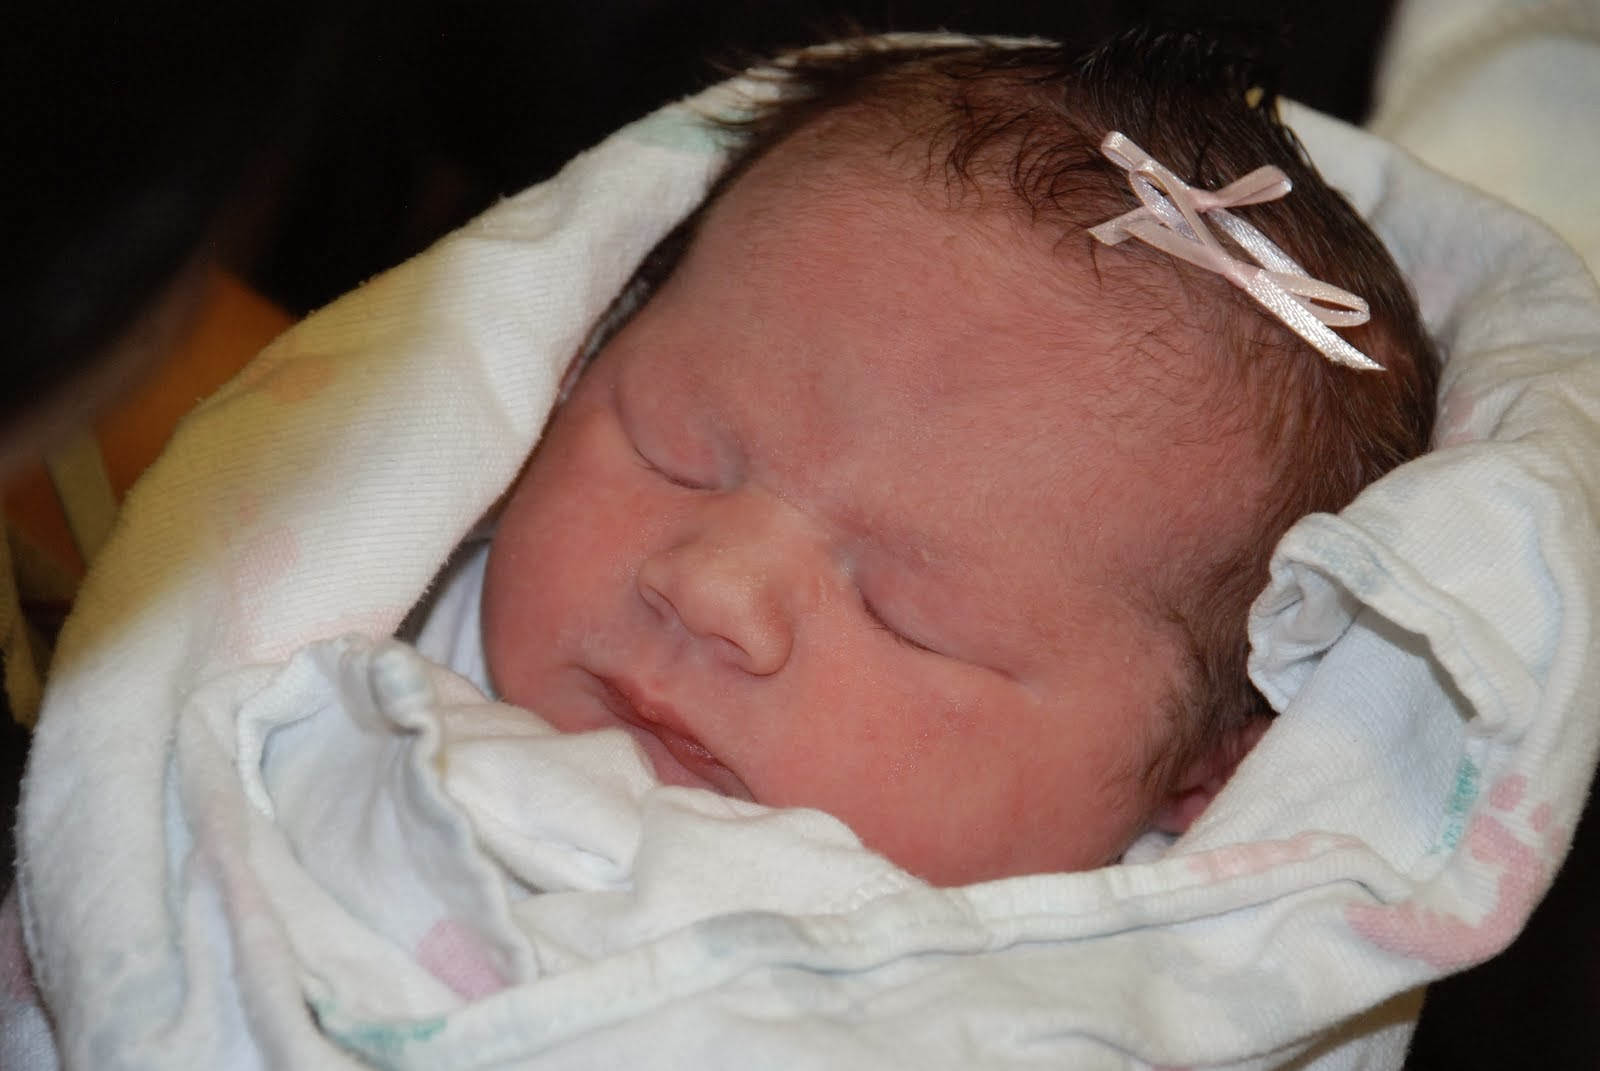 Addisyn June Hennen